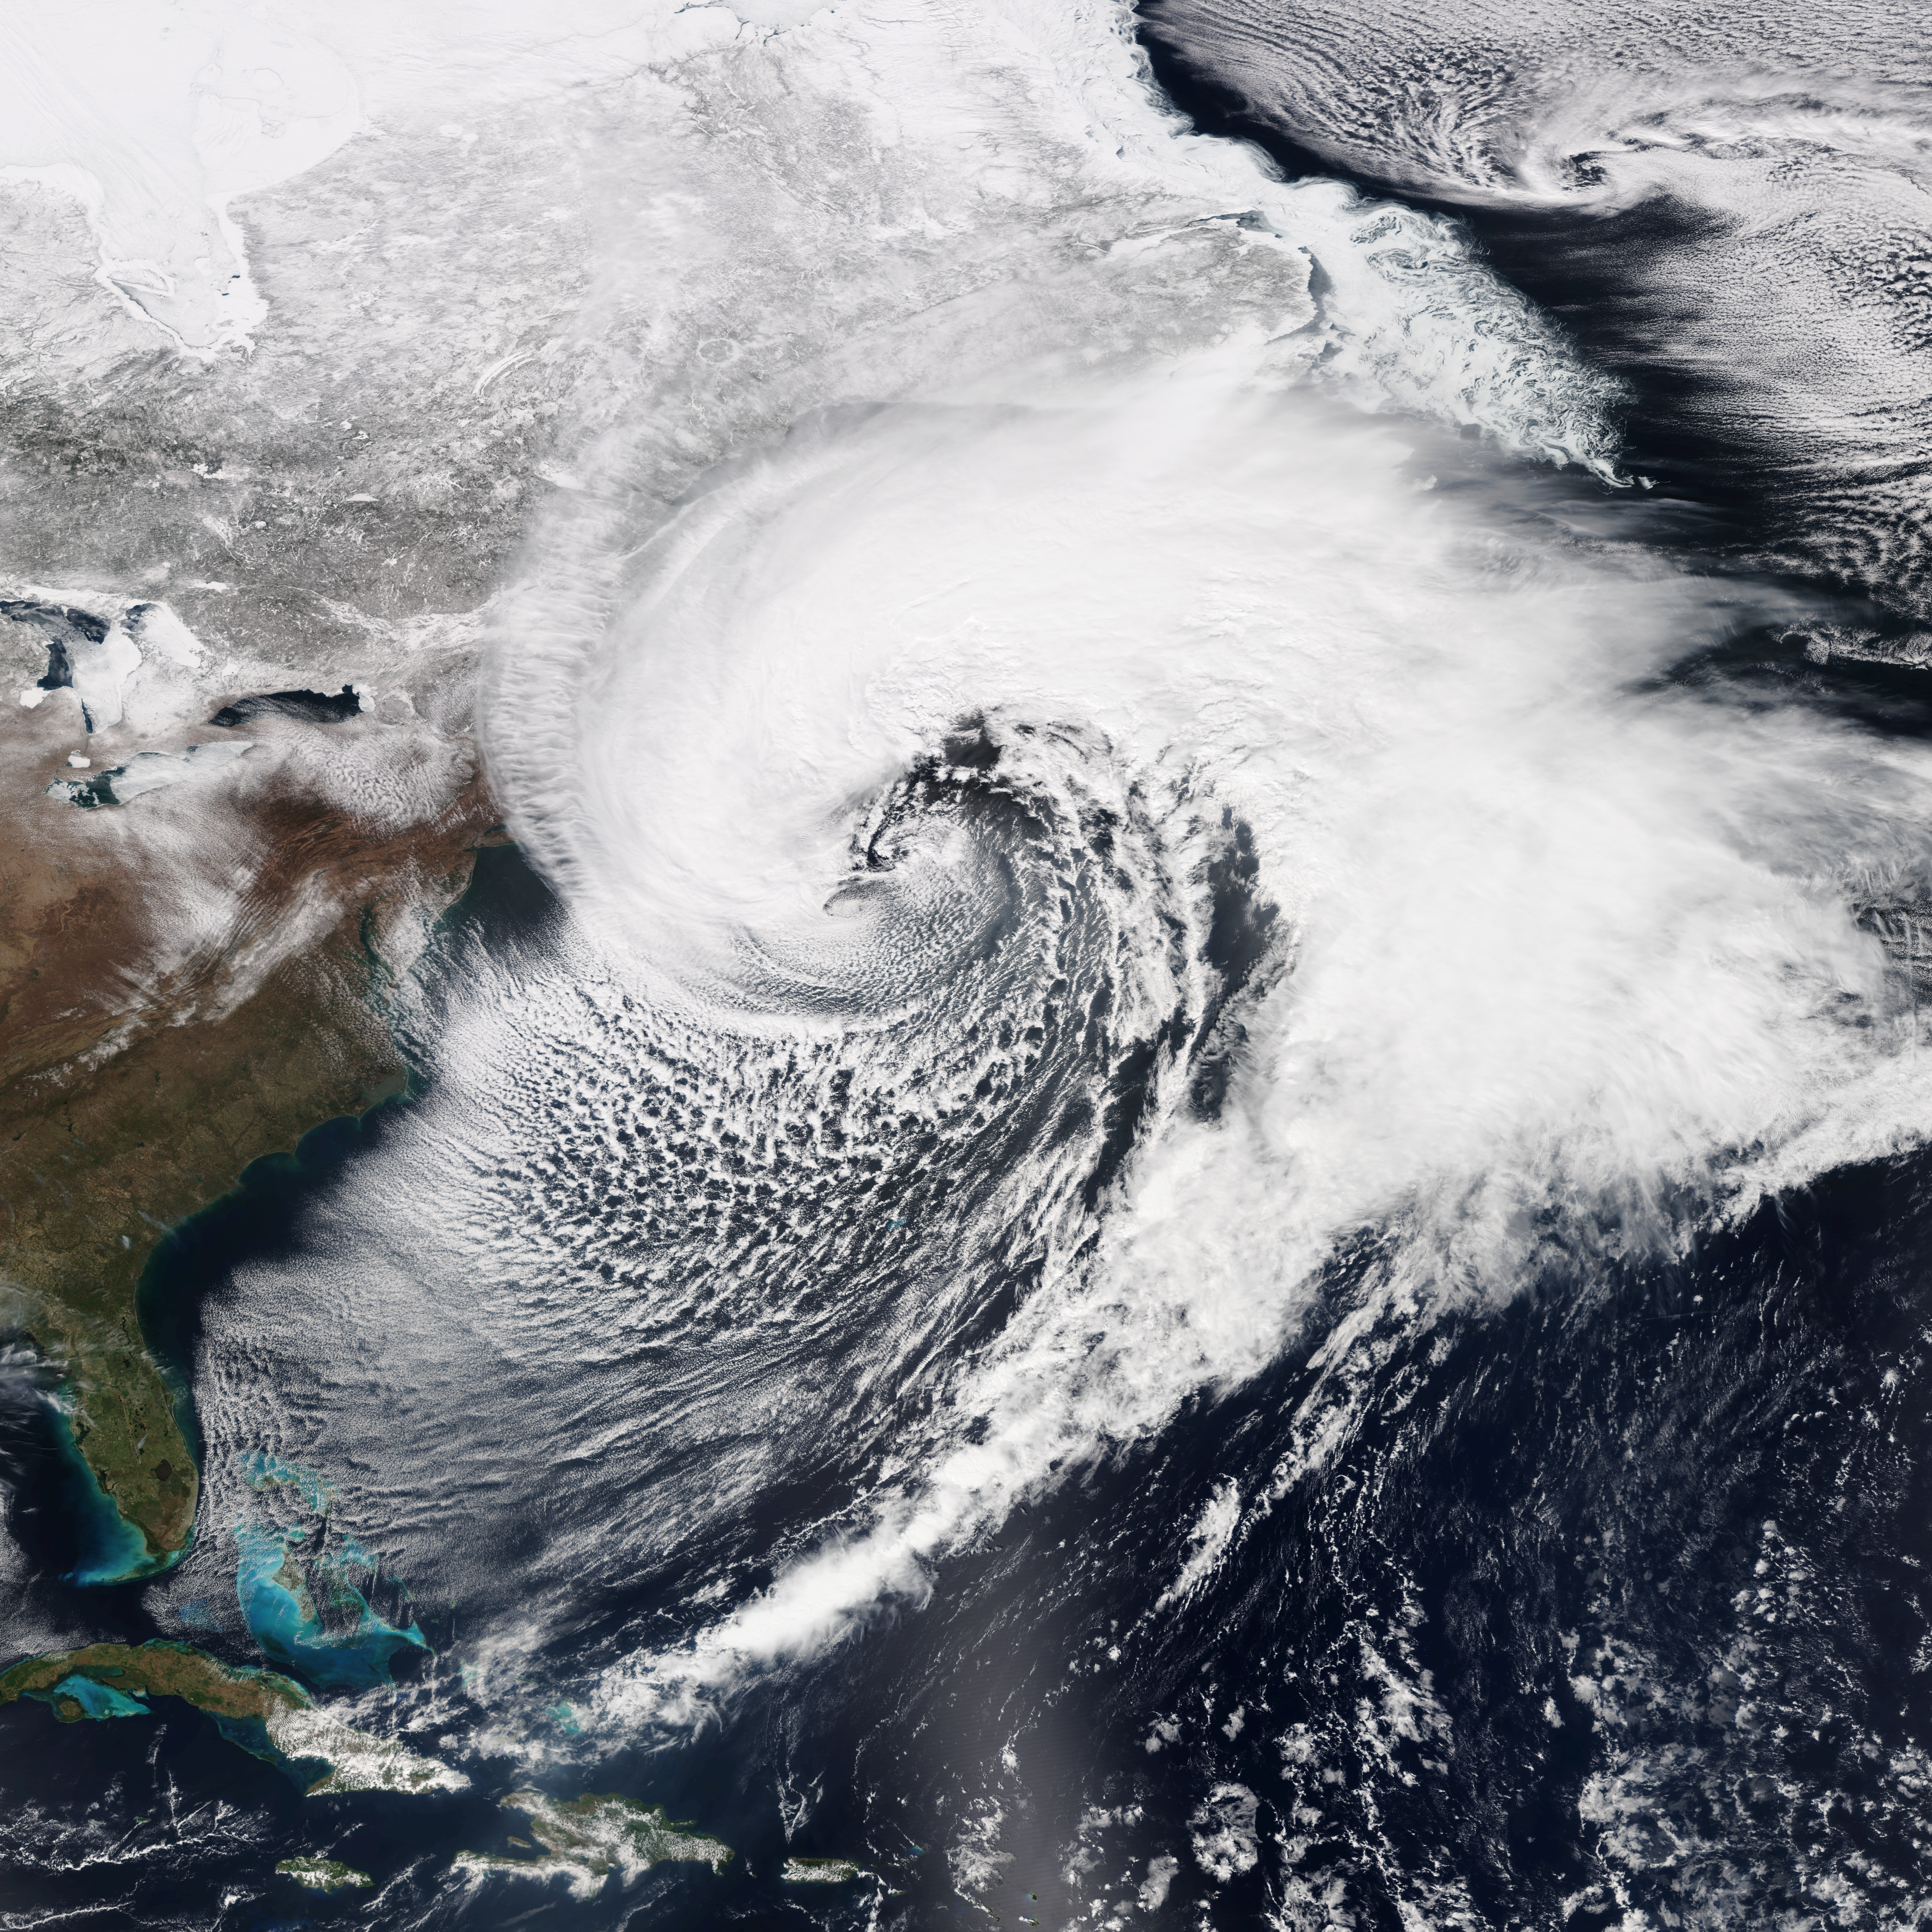 2014 03  >> File March 2014 Nor Easter 2014 03 26 Jpg Wikimedia Commons